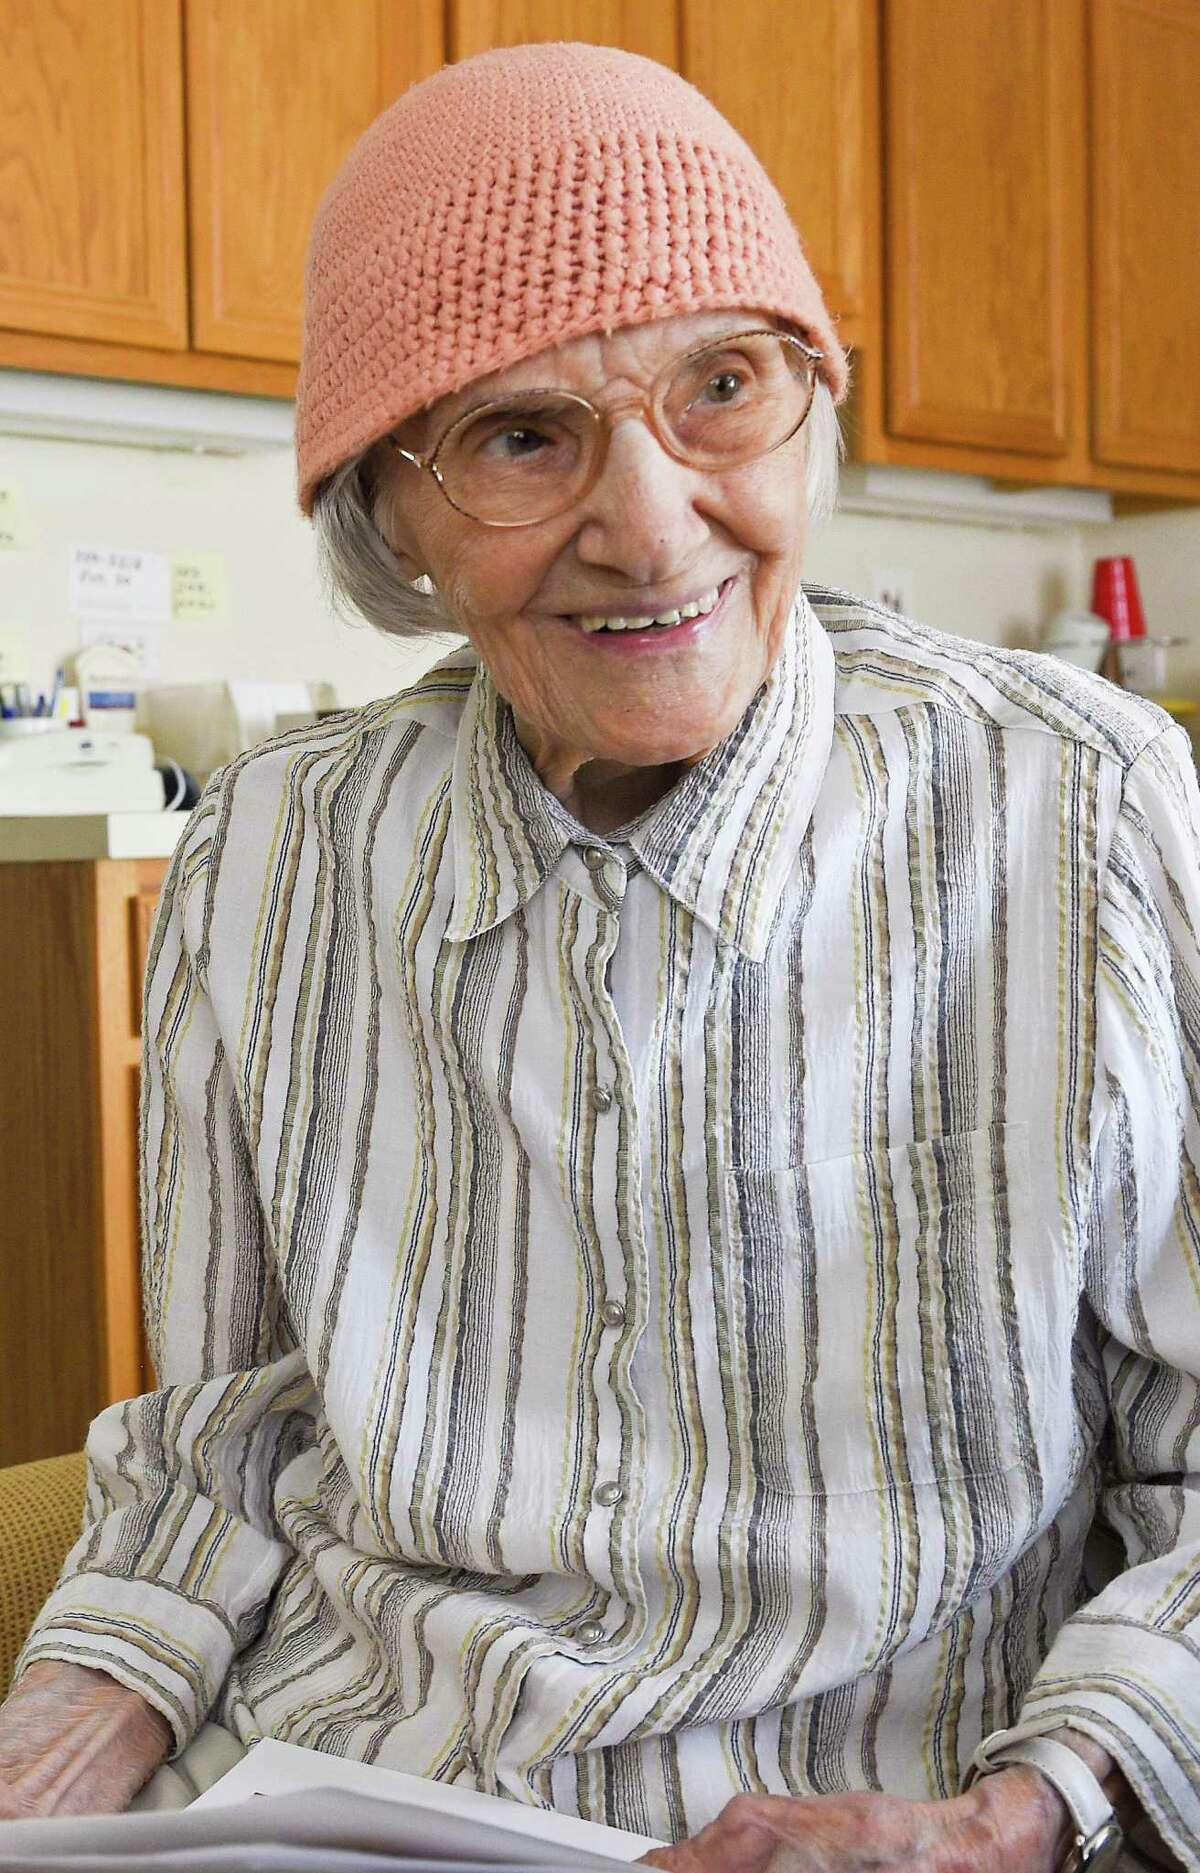 Agnes Ostrowski of Stamford will celebrate her 100th birthday on Friday, April 26, 2019. Stamford Advocate reporter Angela Carella catches up with the free spirited life long resident at her home in Stamford on April 25, 2019.